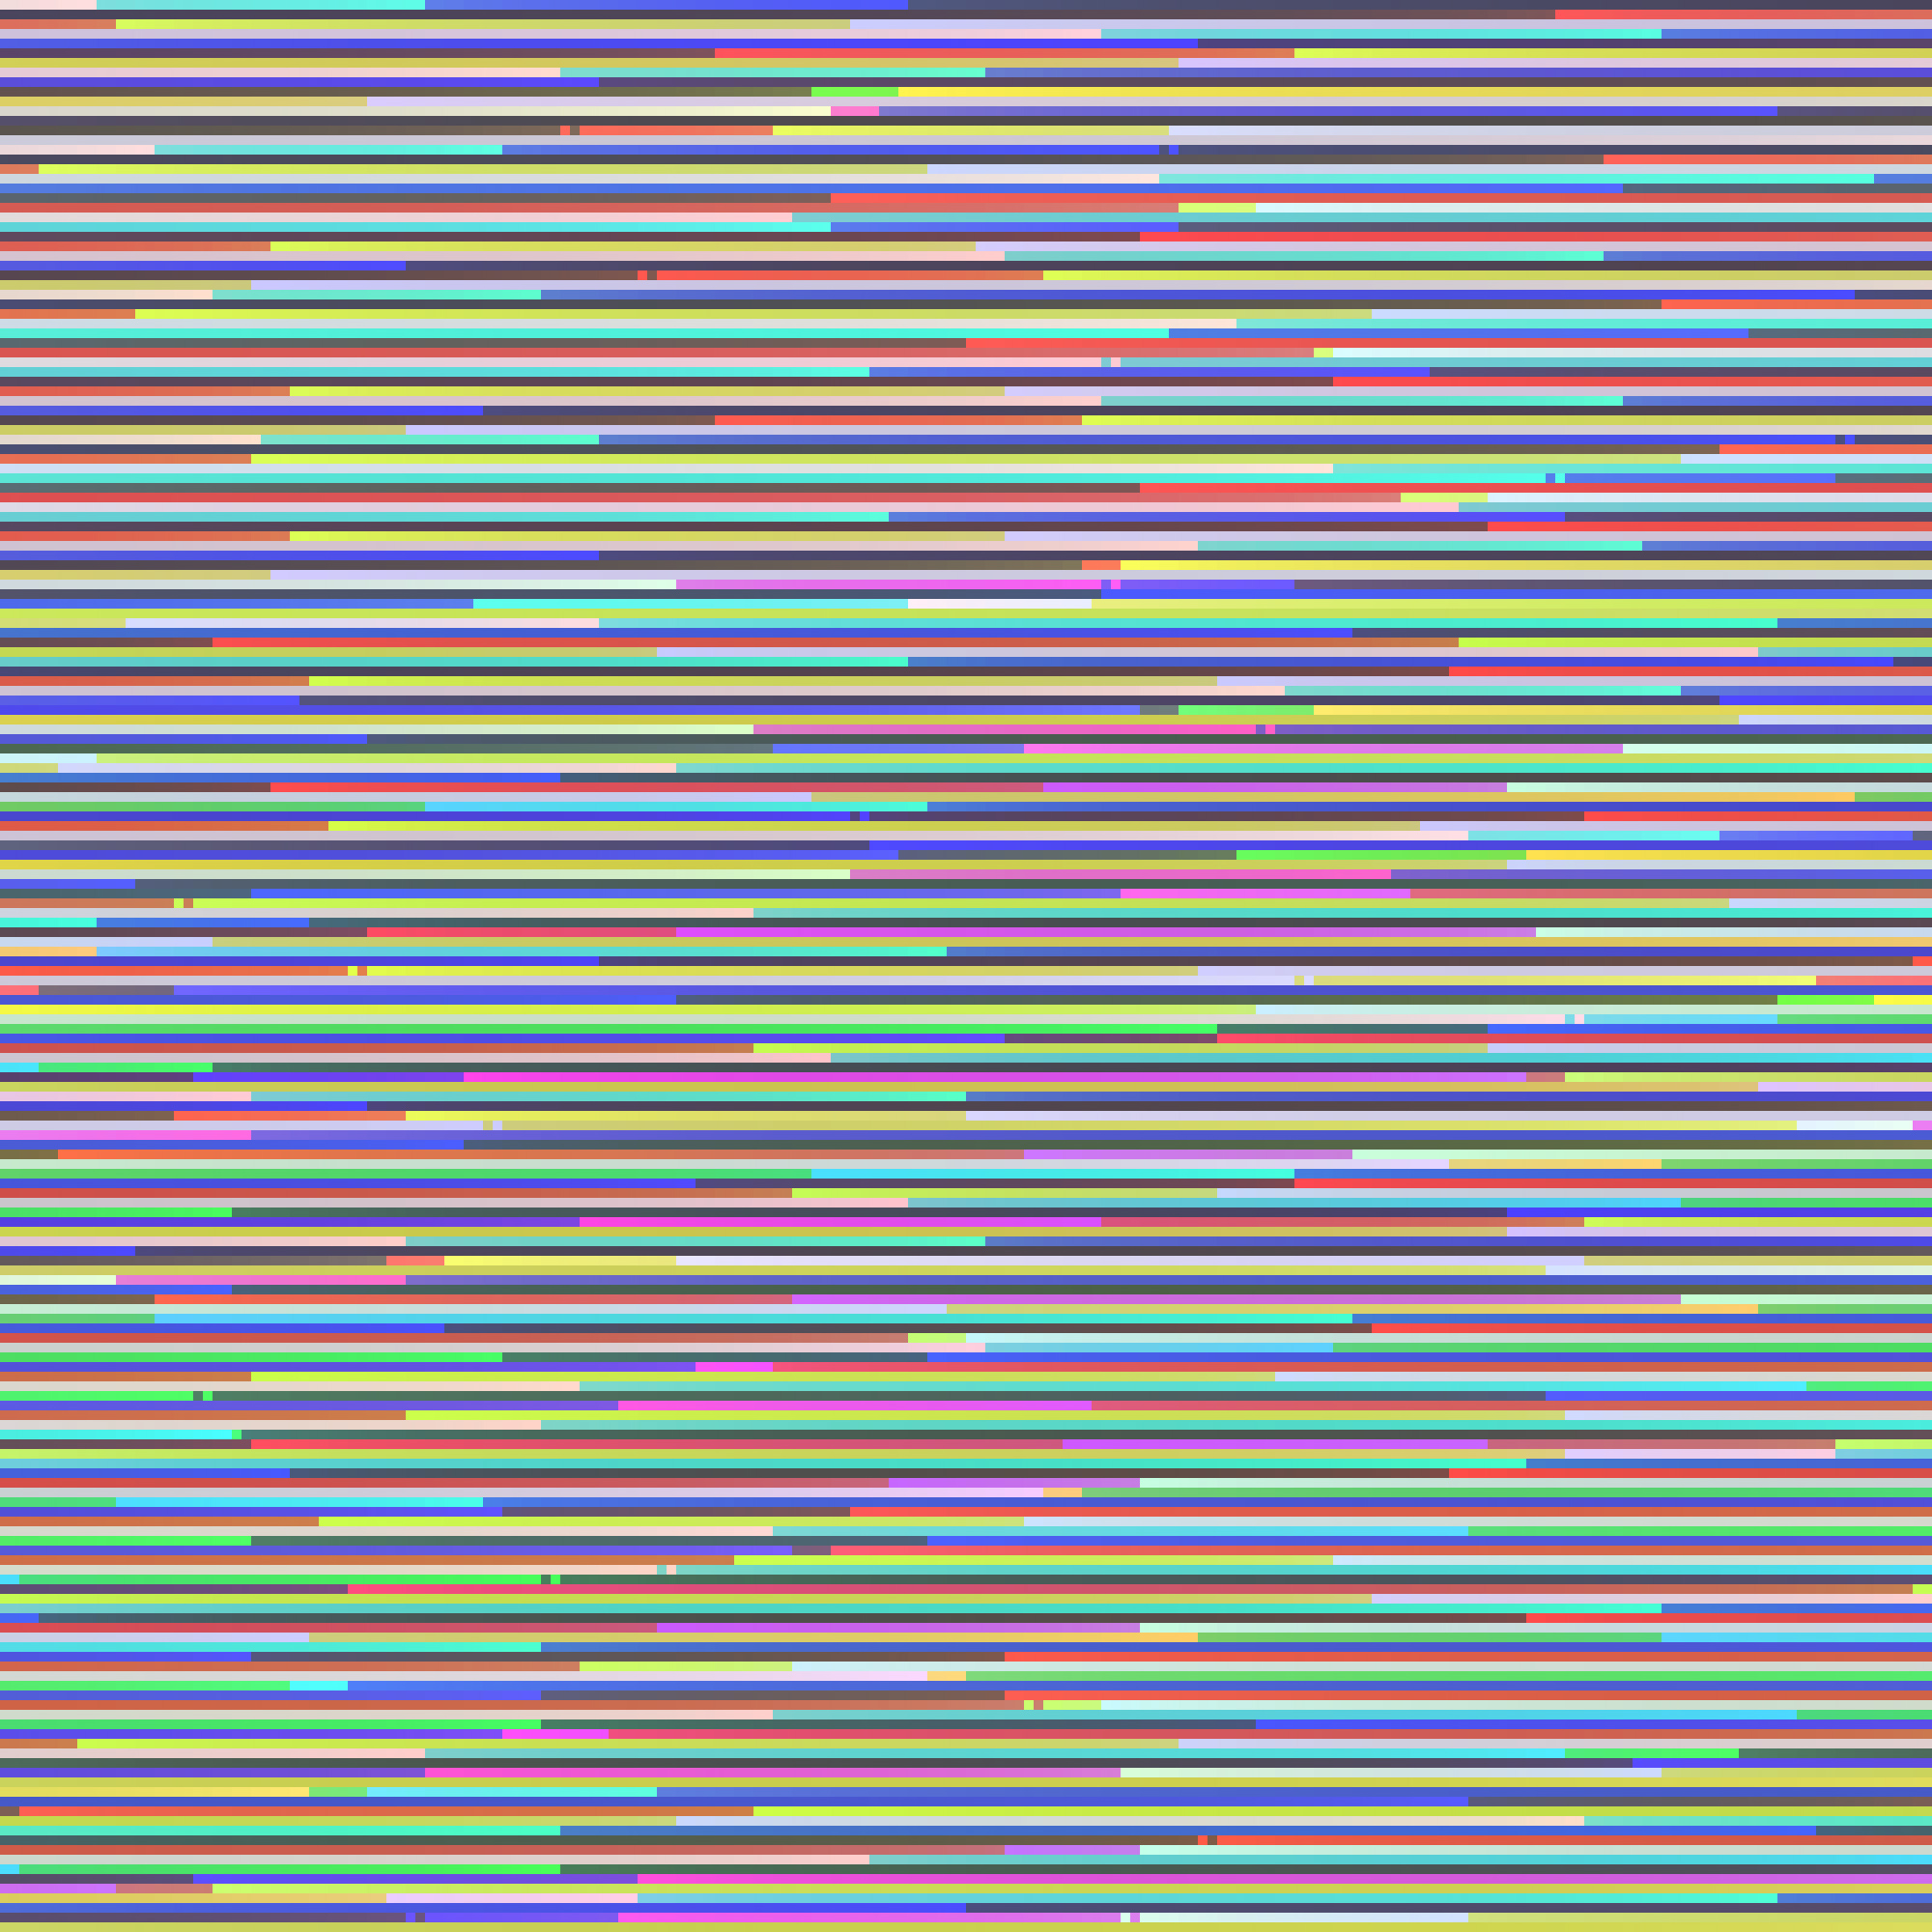 synthesized bass sound  recorded as a .wav audio file  converted to raw data  imported into photoshop as a .tif image file  15 sec.